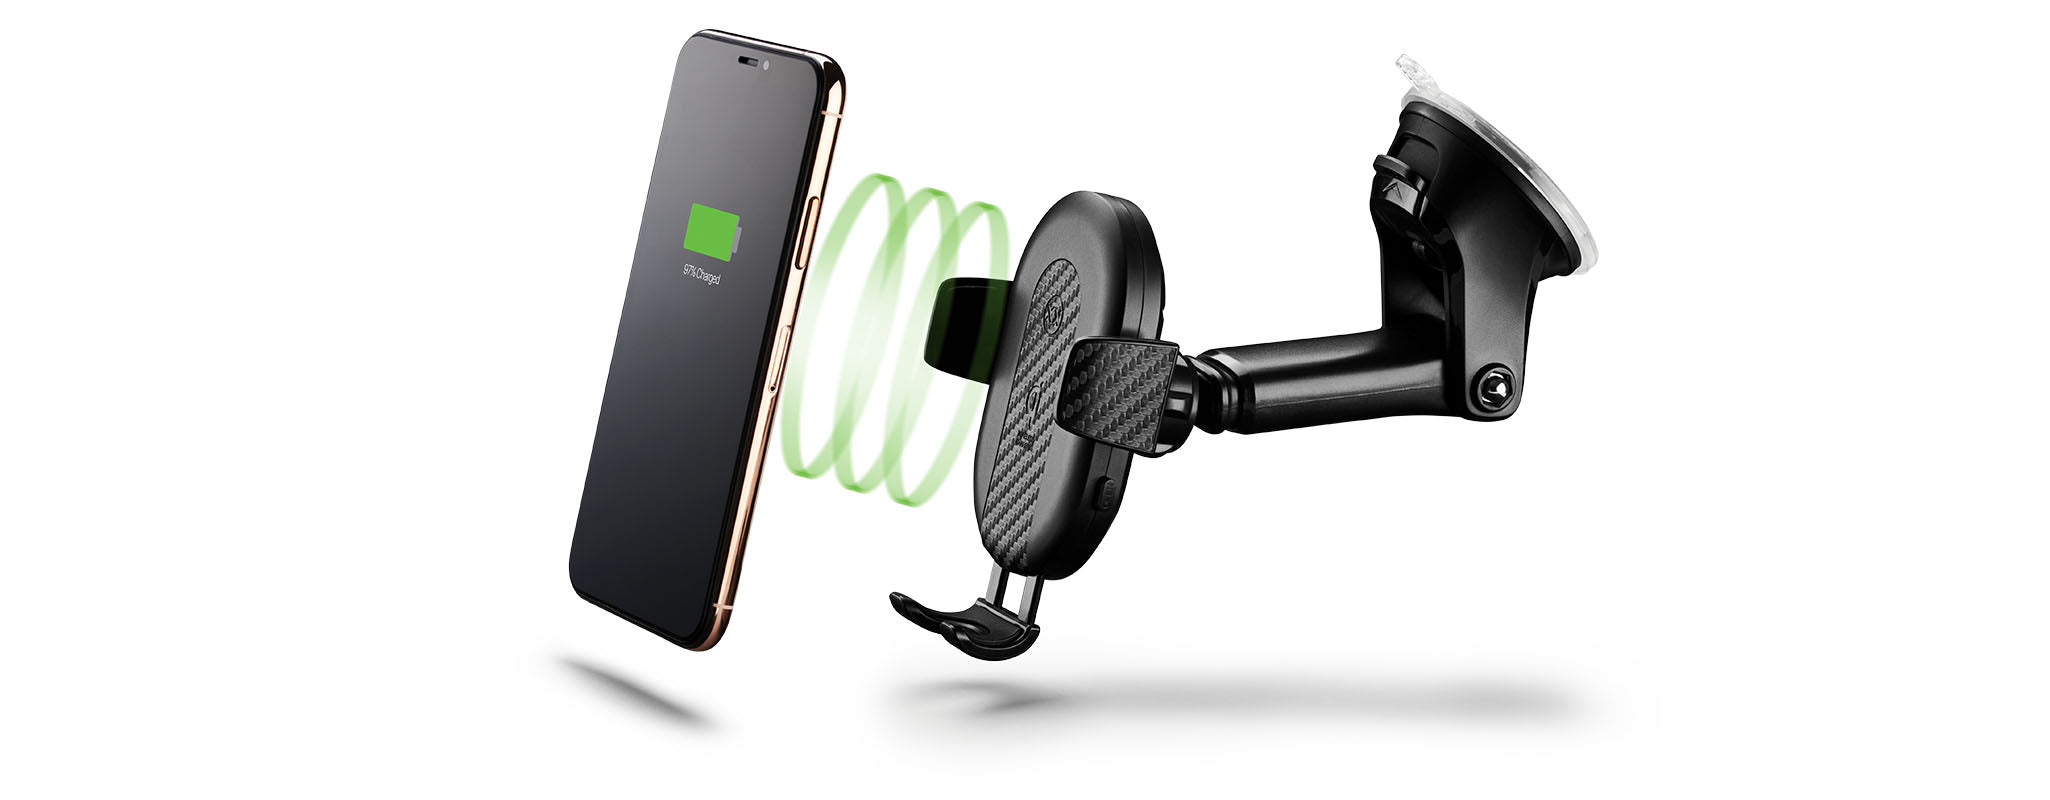 DashCharge long arm wireless car mount for iPhone XS